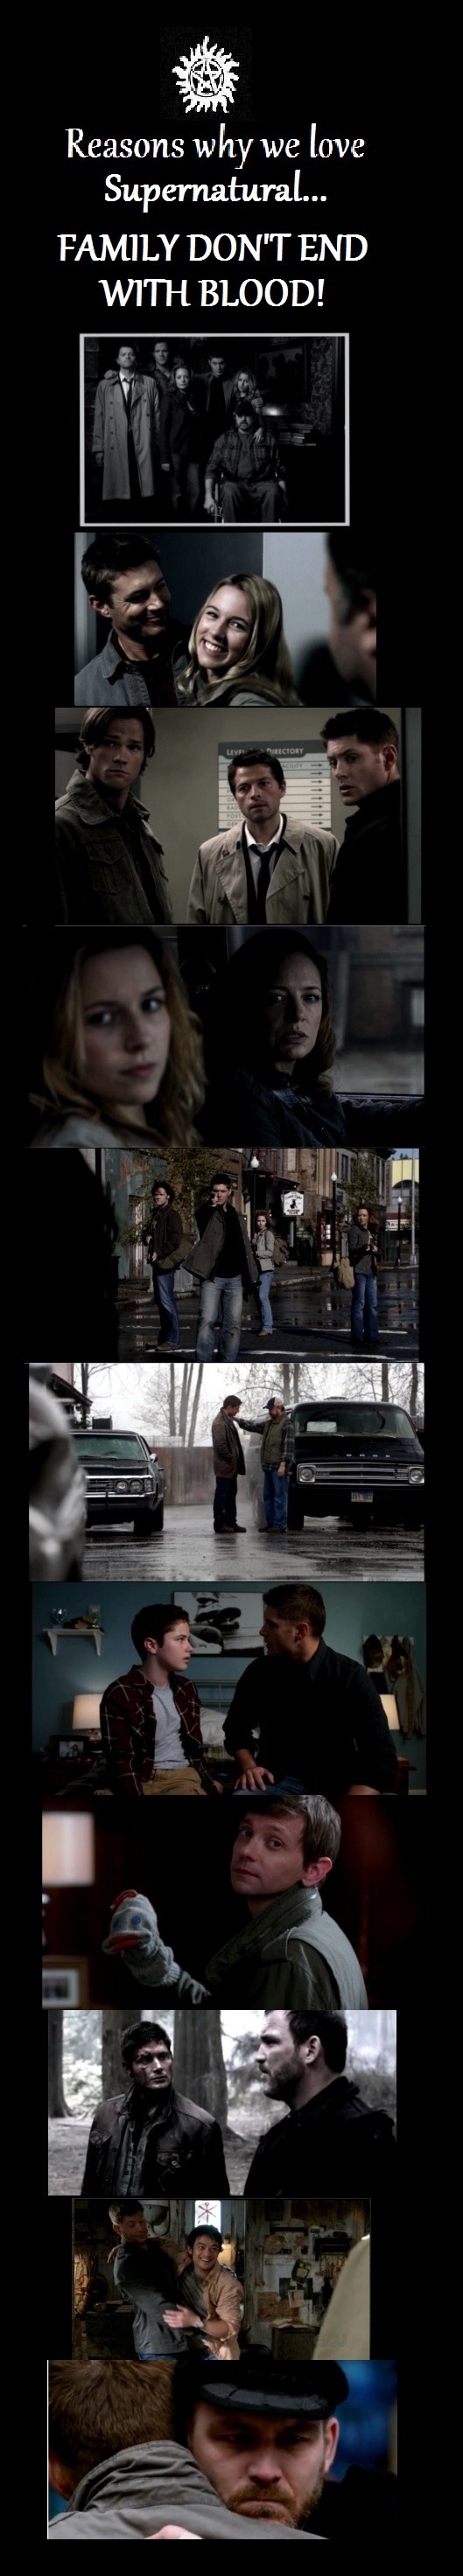 Supernatural Quotes Family Don T End With Blood: 25+ Best Bobby Singer Quotes On Pinterest